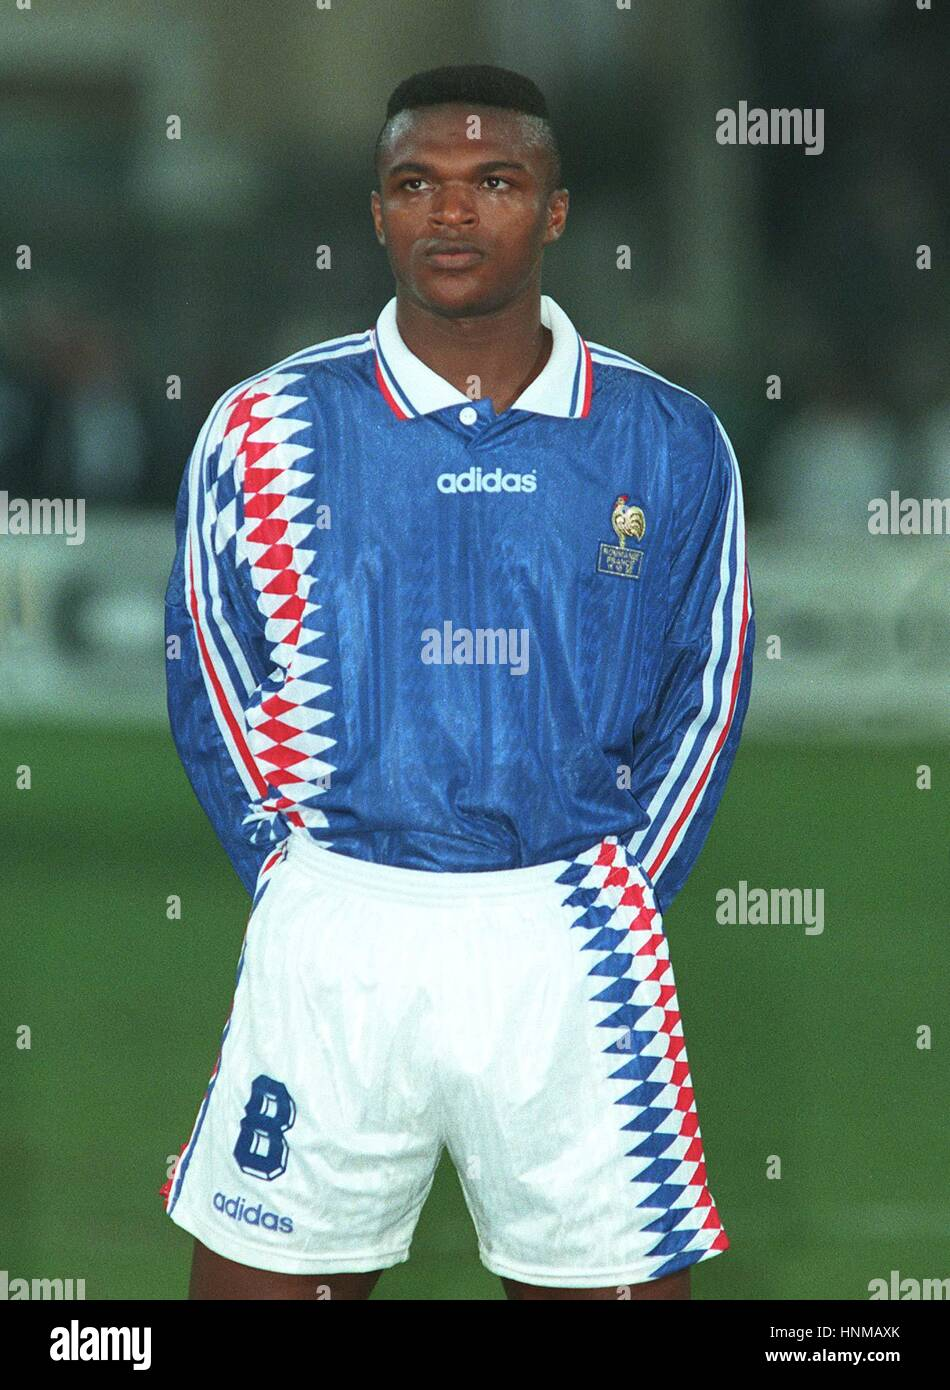 MARCEL DESAILLY FRANCE & AC MILAN 19 December 1995 Stock